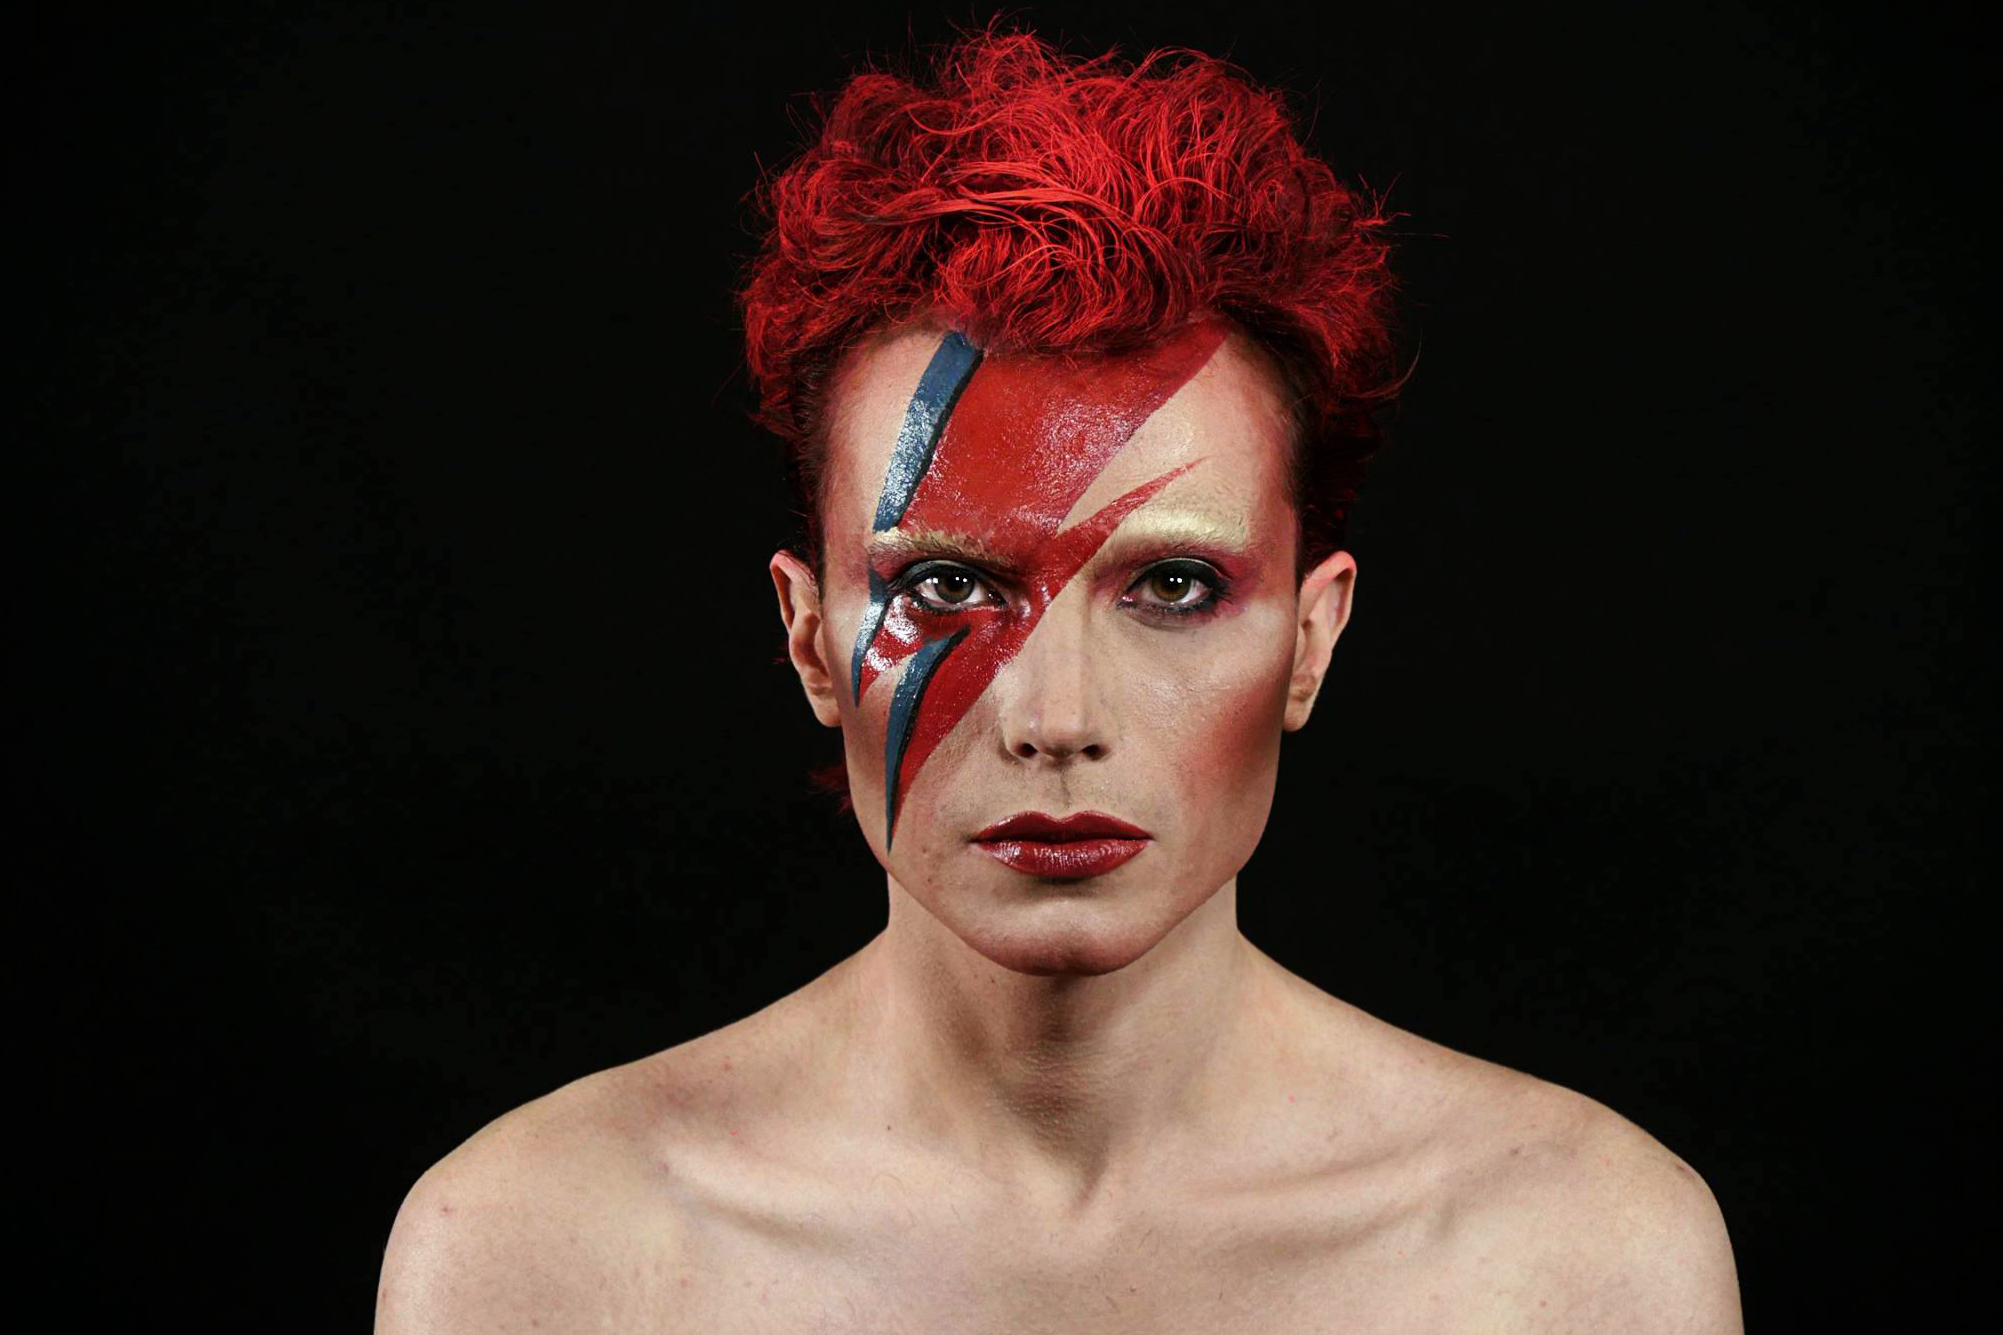 Young Man With thunder makeup in red and blue